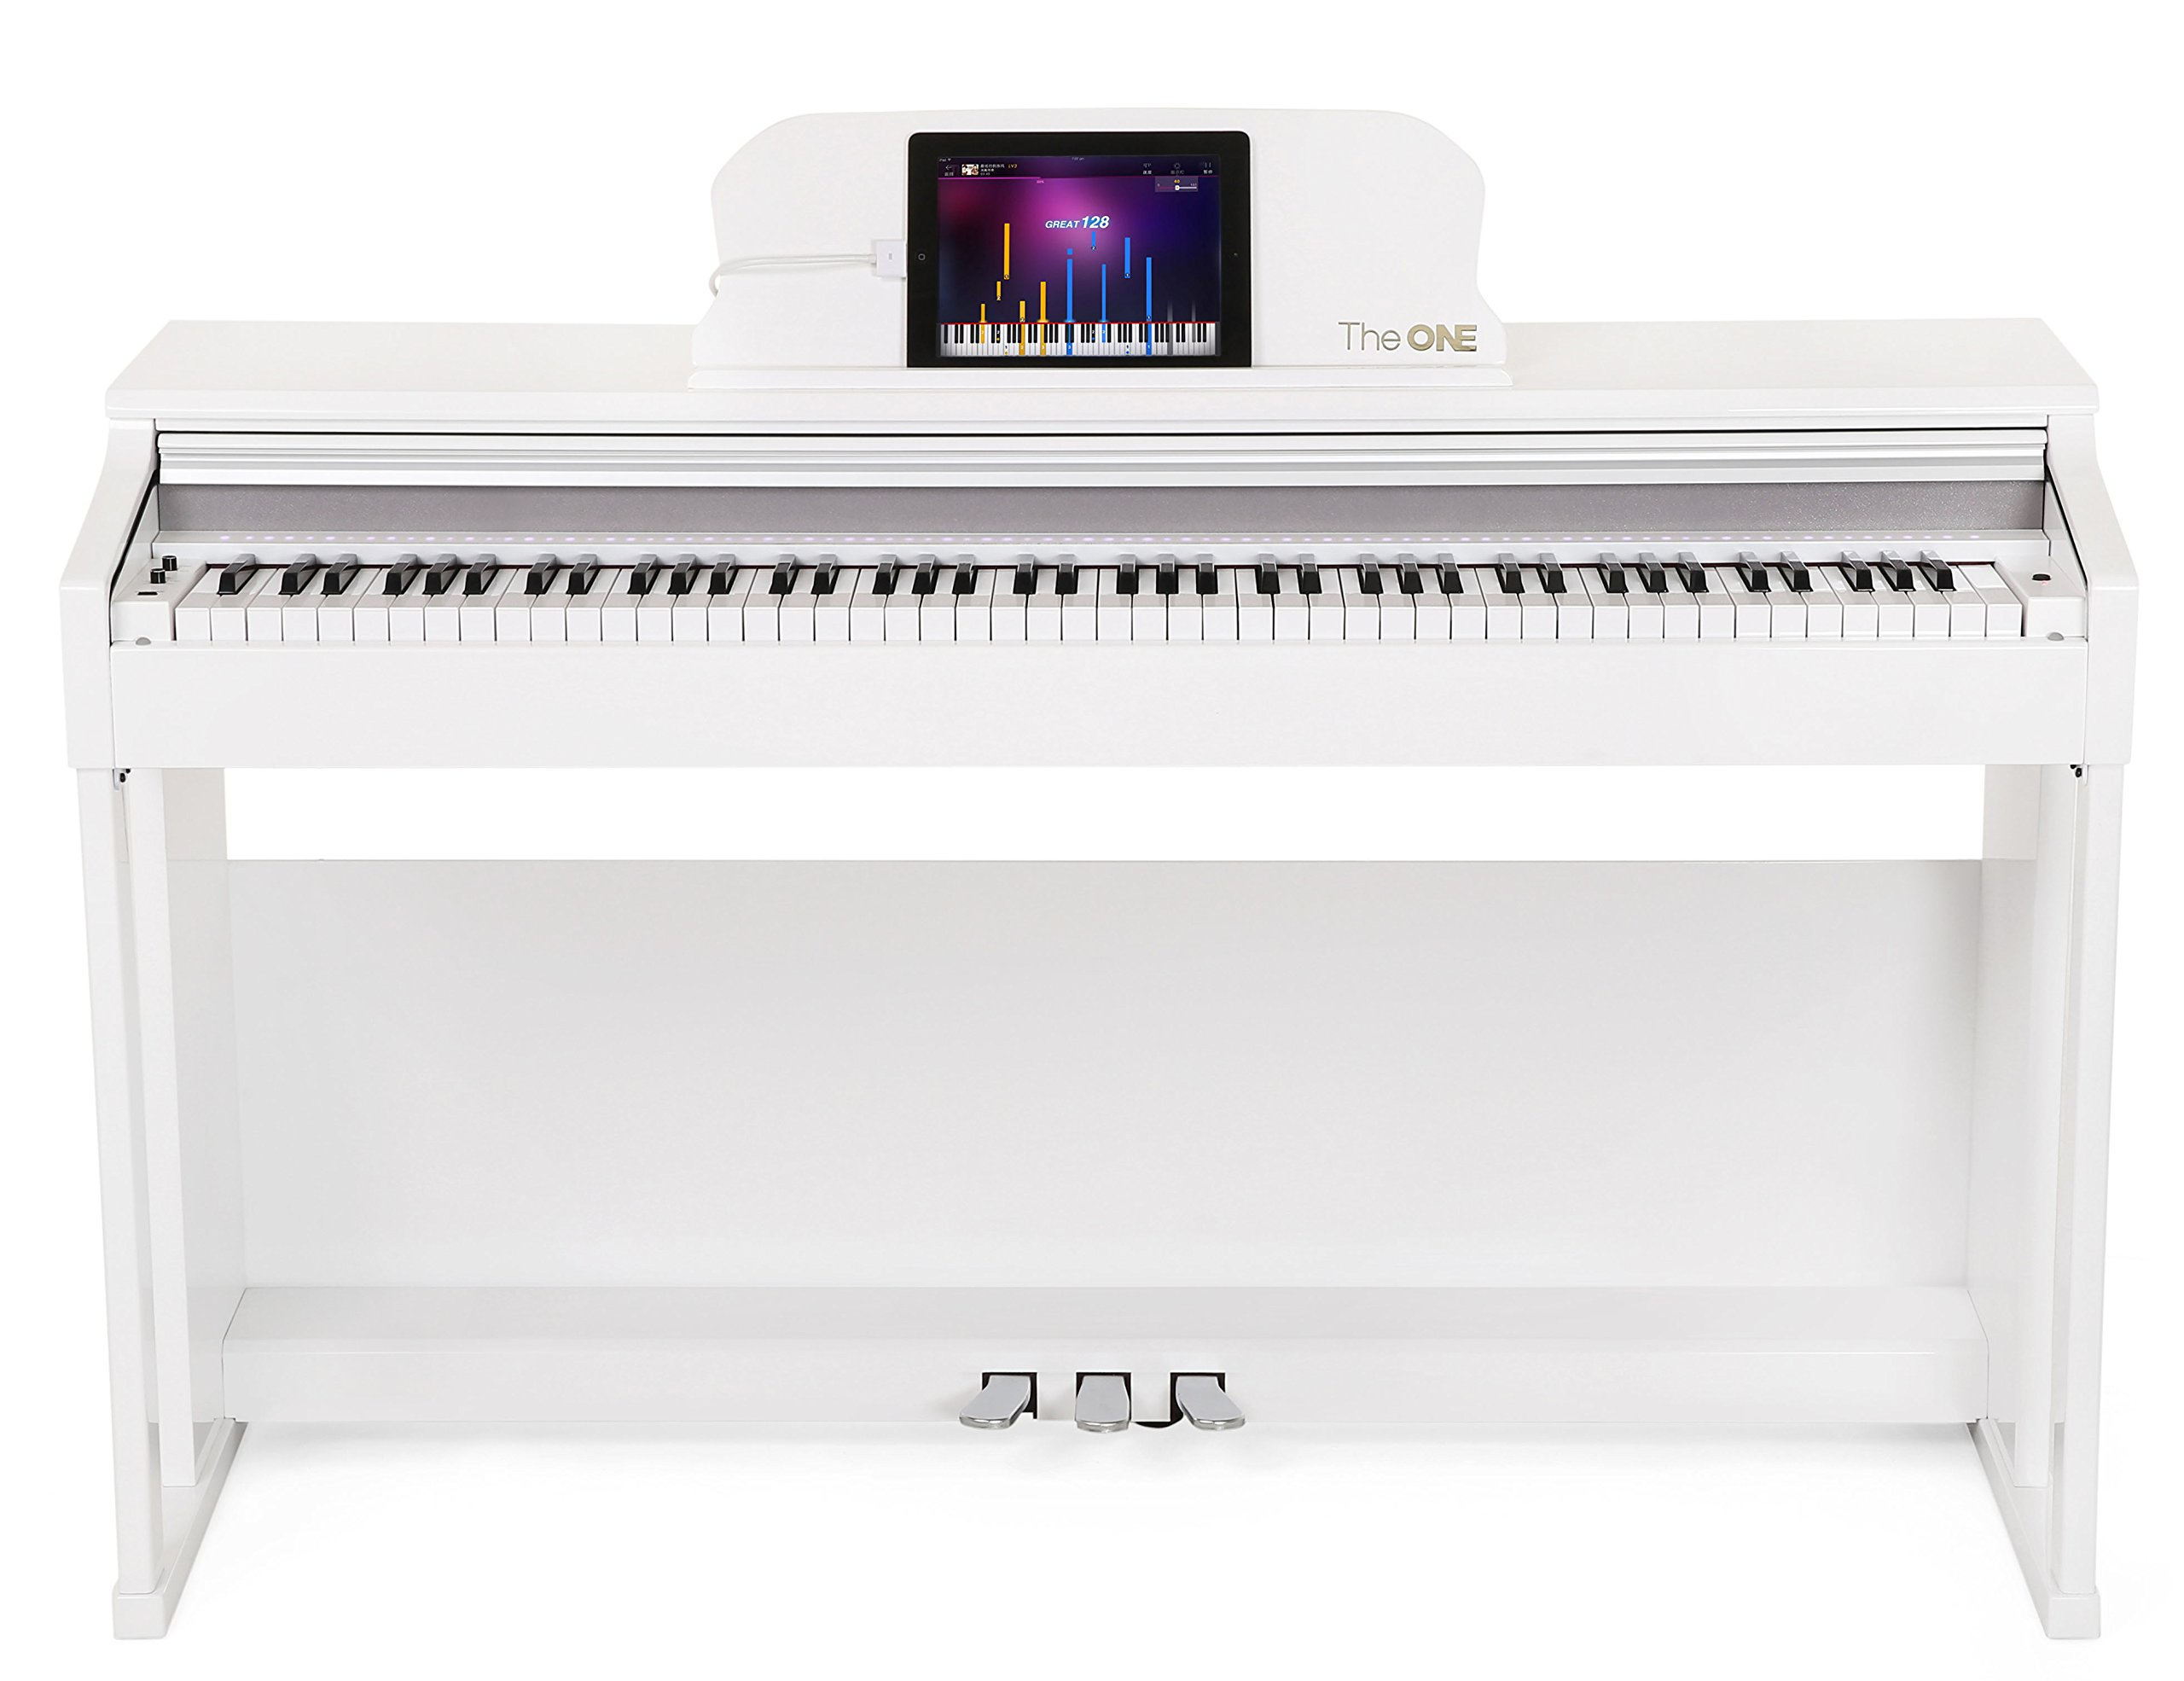 The ONE Smart Piano 88-Key Home Digital Piano Grand Graded Action Upright Piano - Classic White